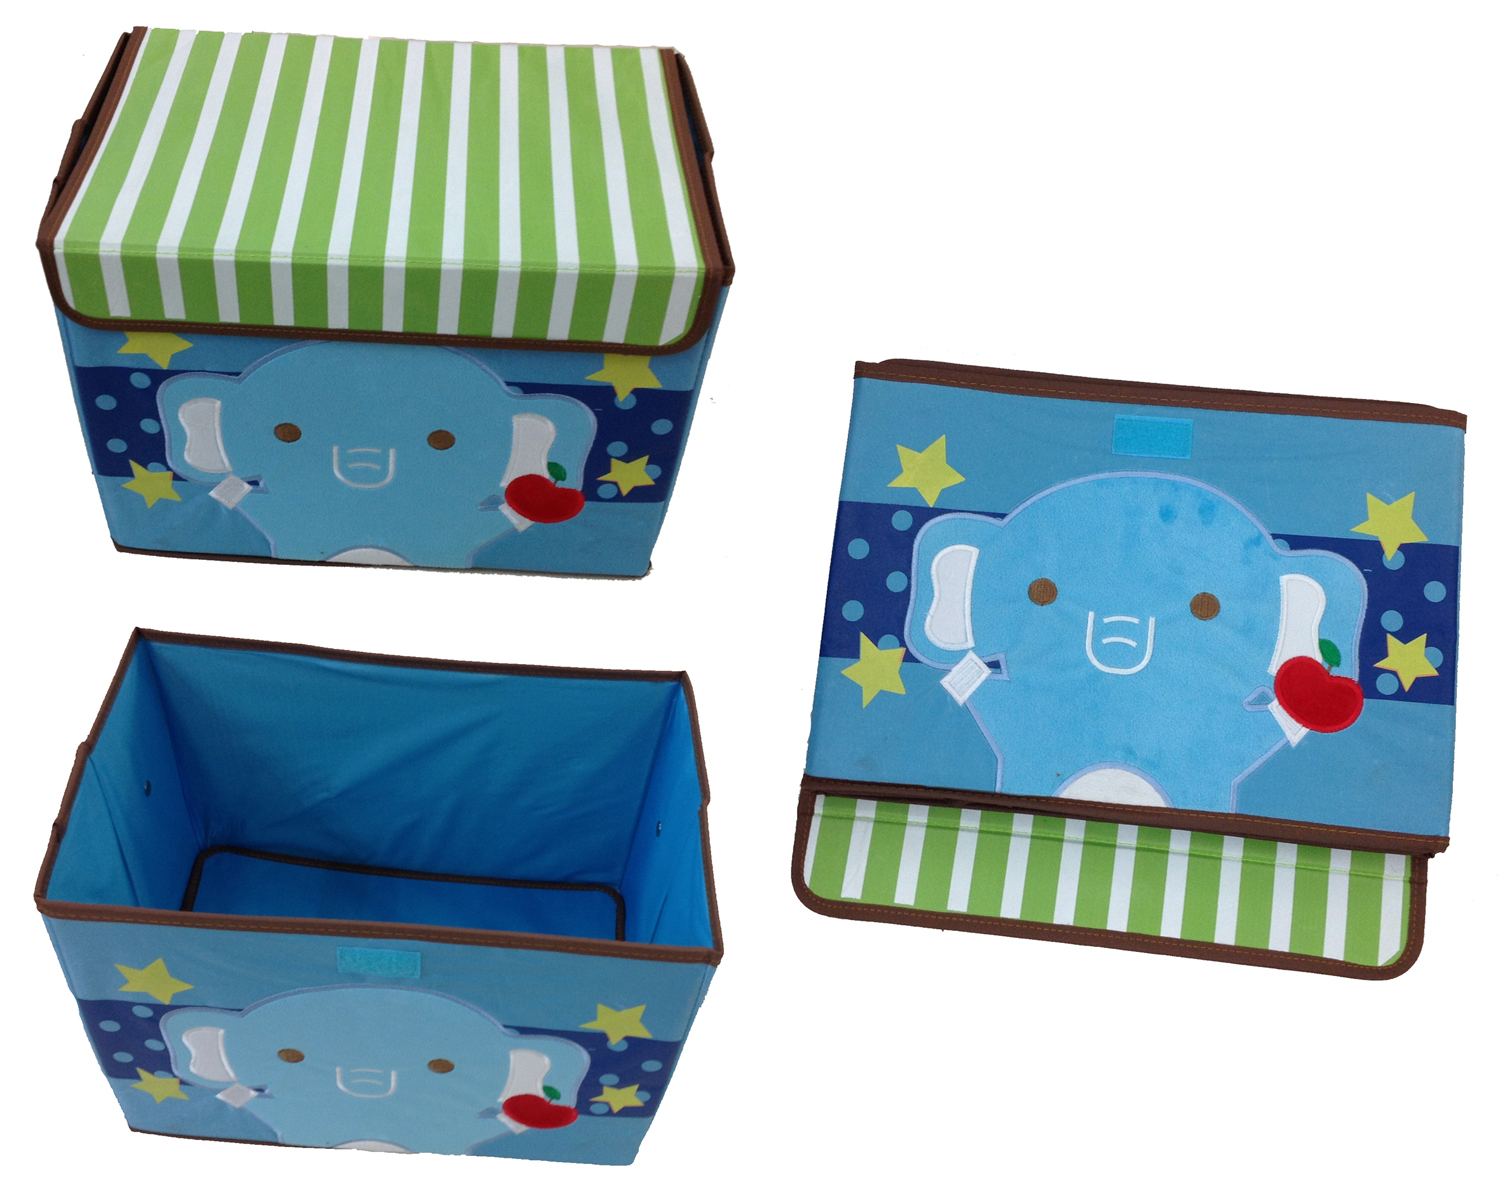 spielzeugbox elefant aufbewahrungsbox spielzeugkiste aufbewahrung kinderm bel ebay. Black Bedroom Furniture Sets. Home Design Ideas